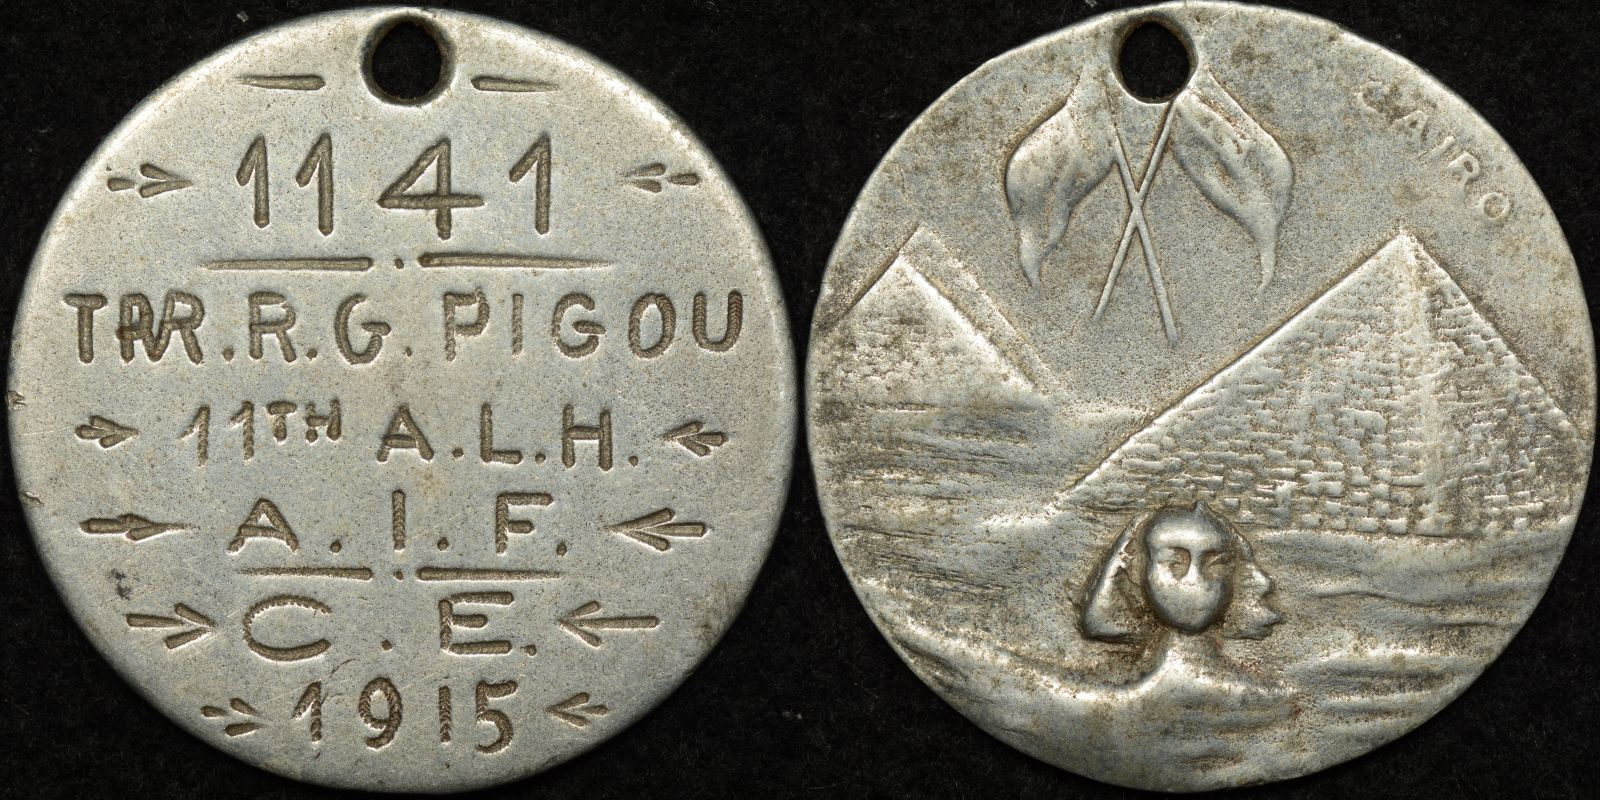 Australian World War 1 Army Identity Tag – R.G. Pigou 1141